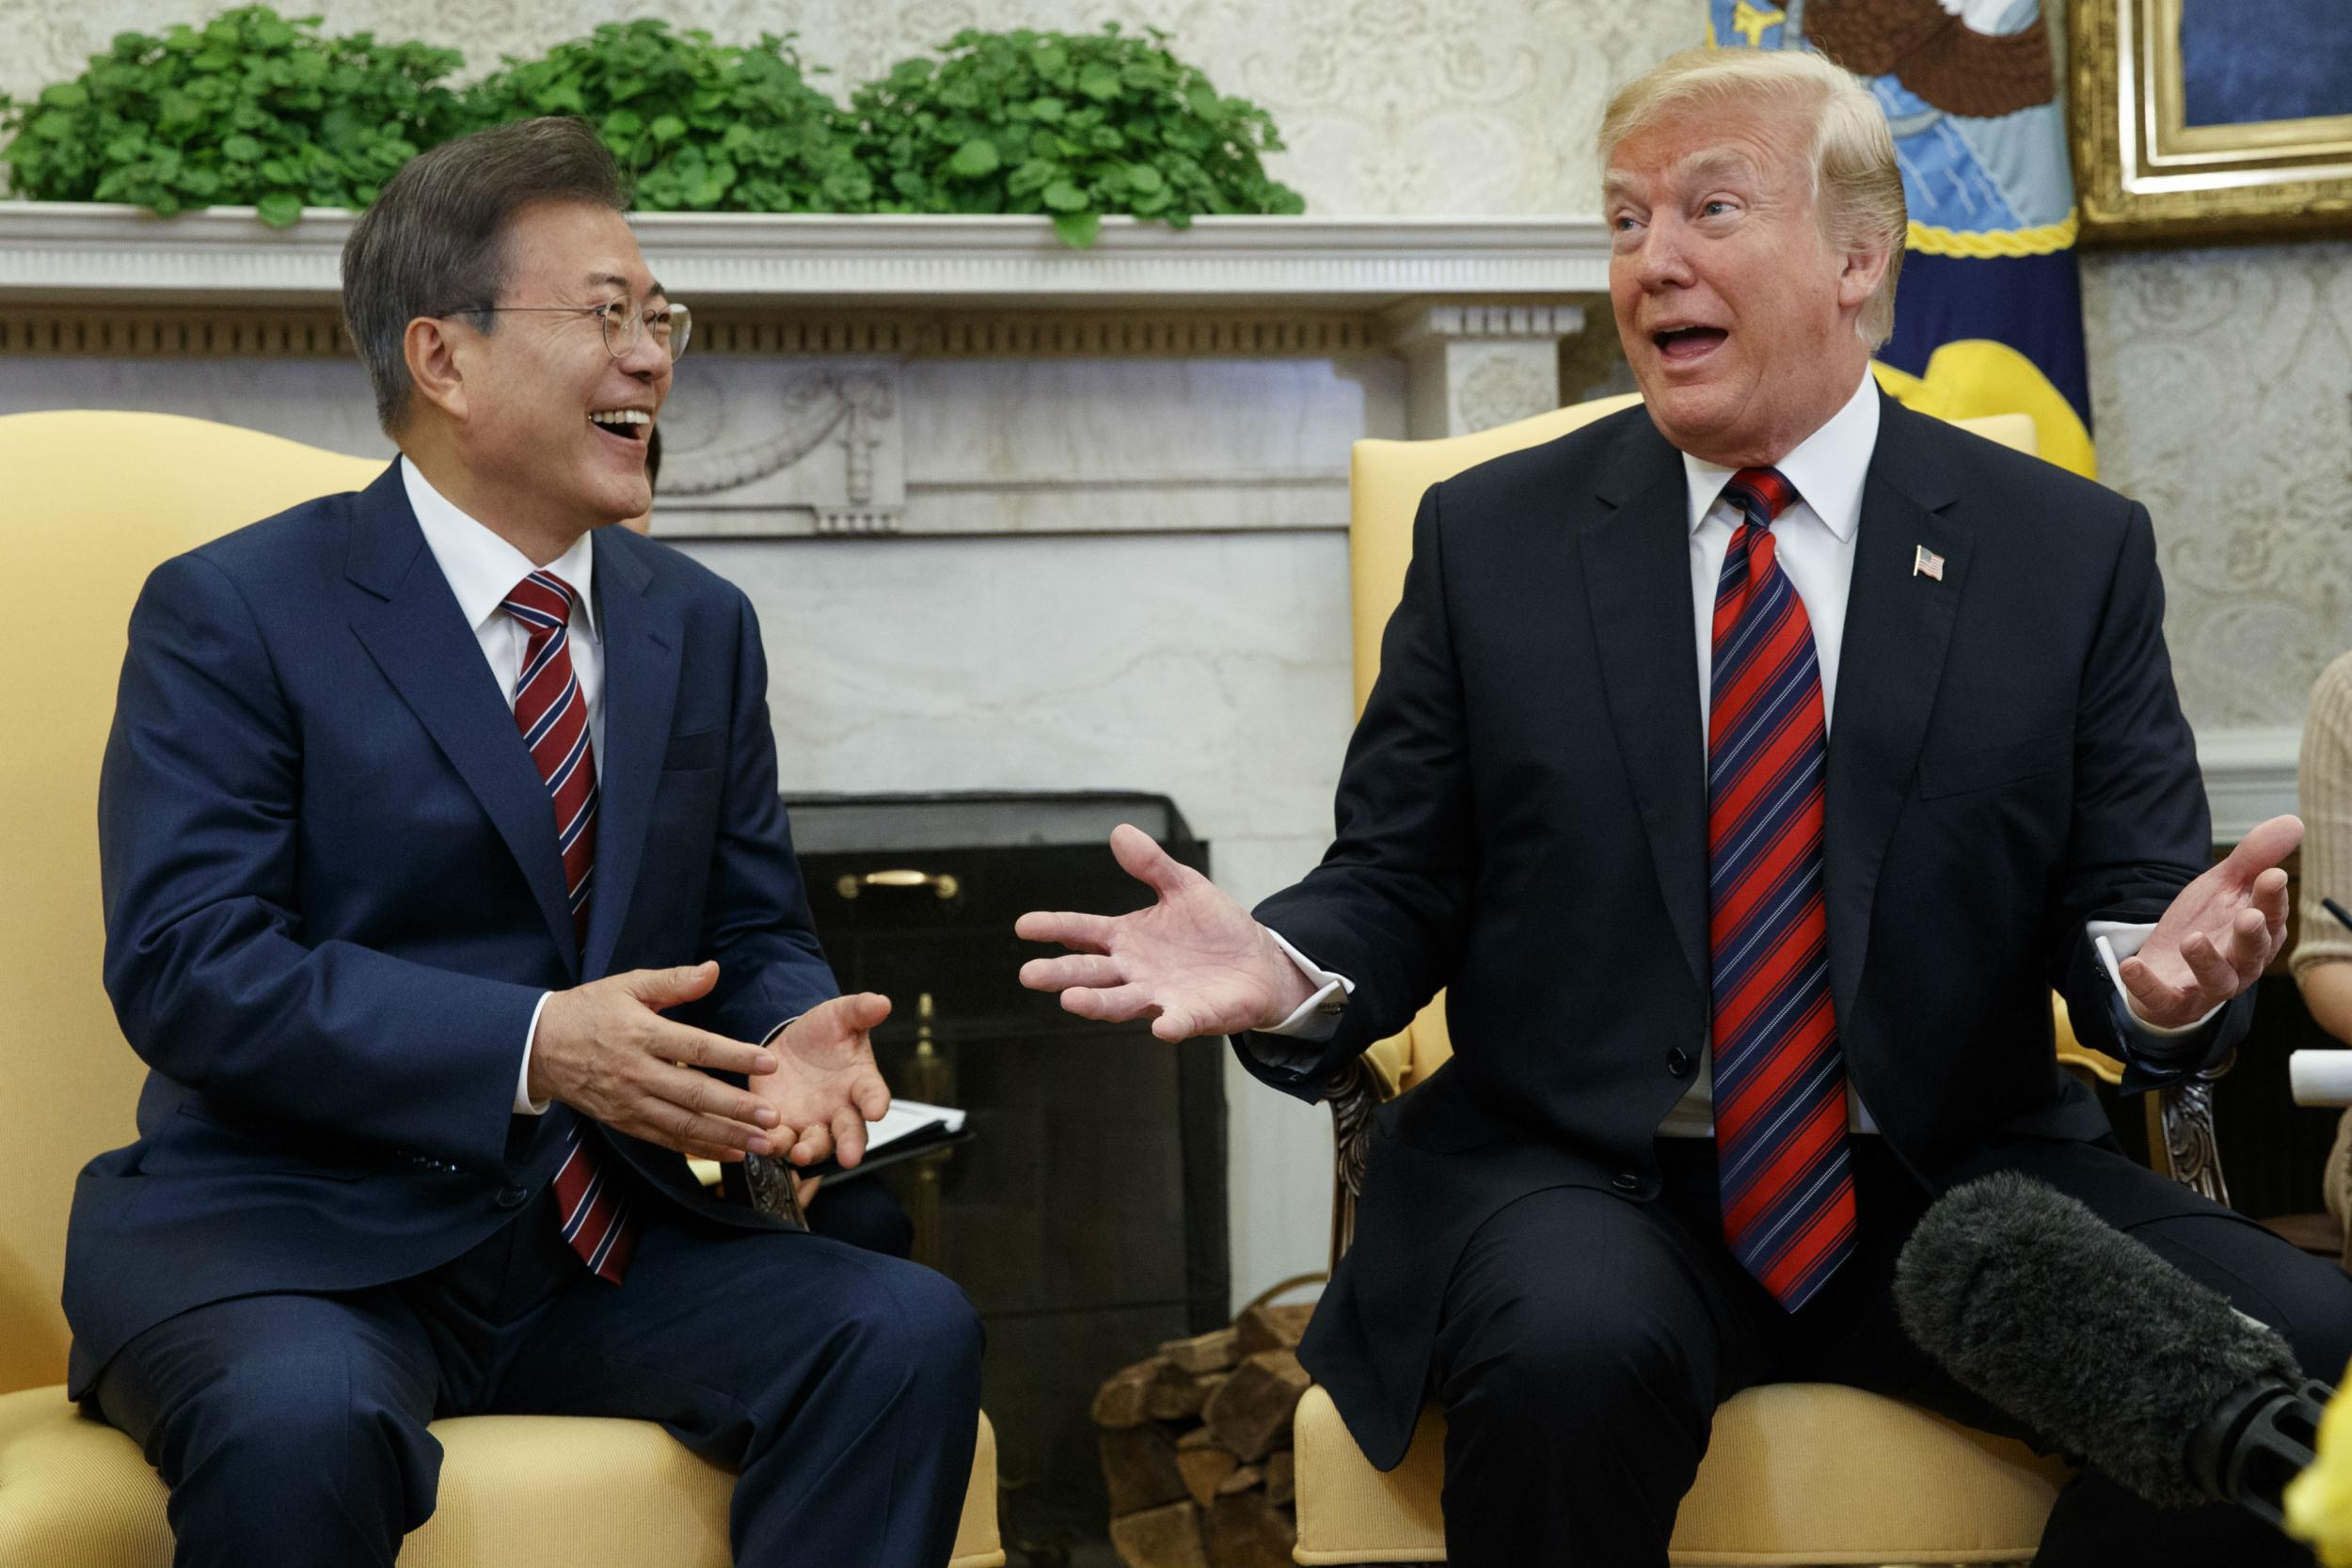 Donald Trump reveals North Korea summit could be delayed if certain conditions not met